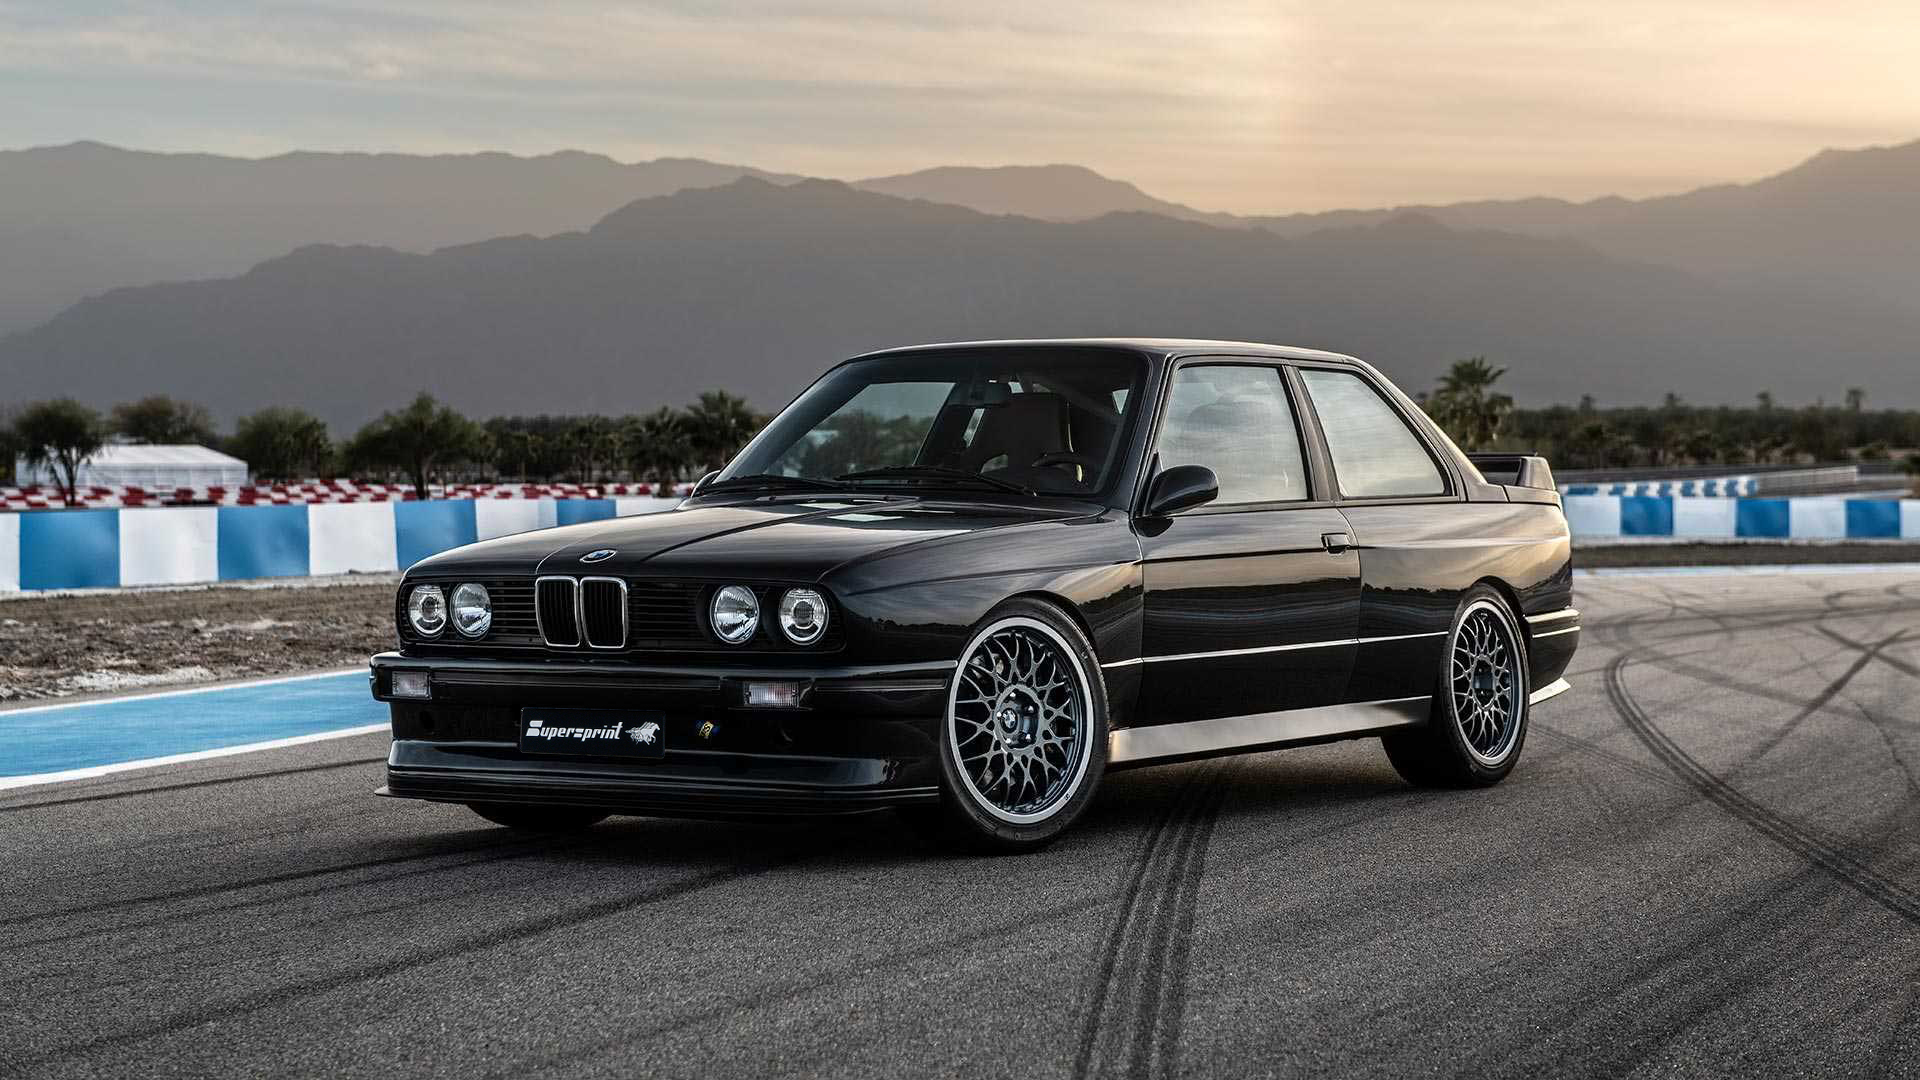 Supersprint Exhaust For Bmw E30 All Models For E46 M3 S54 Engine Conversion